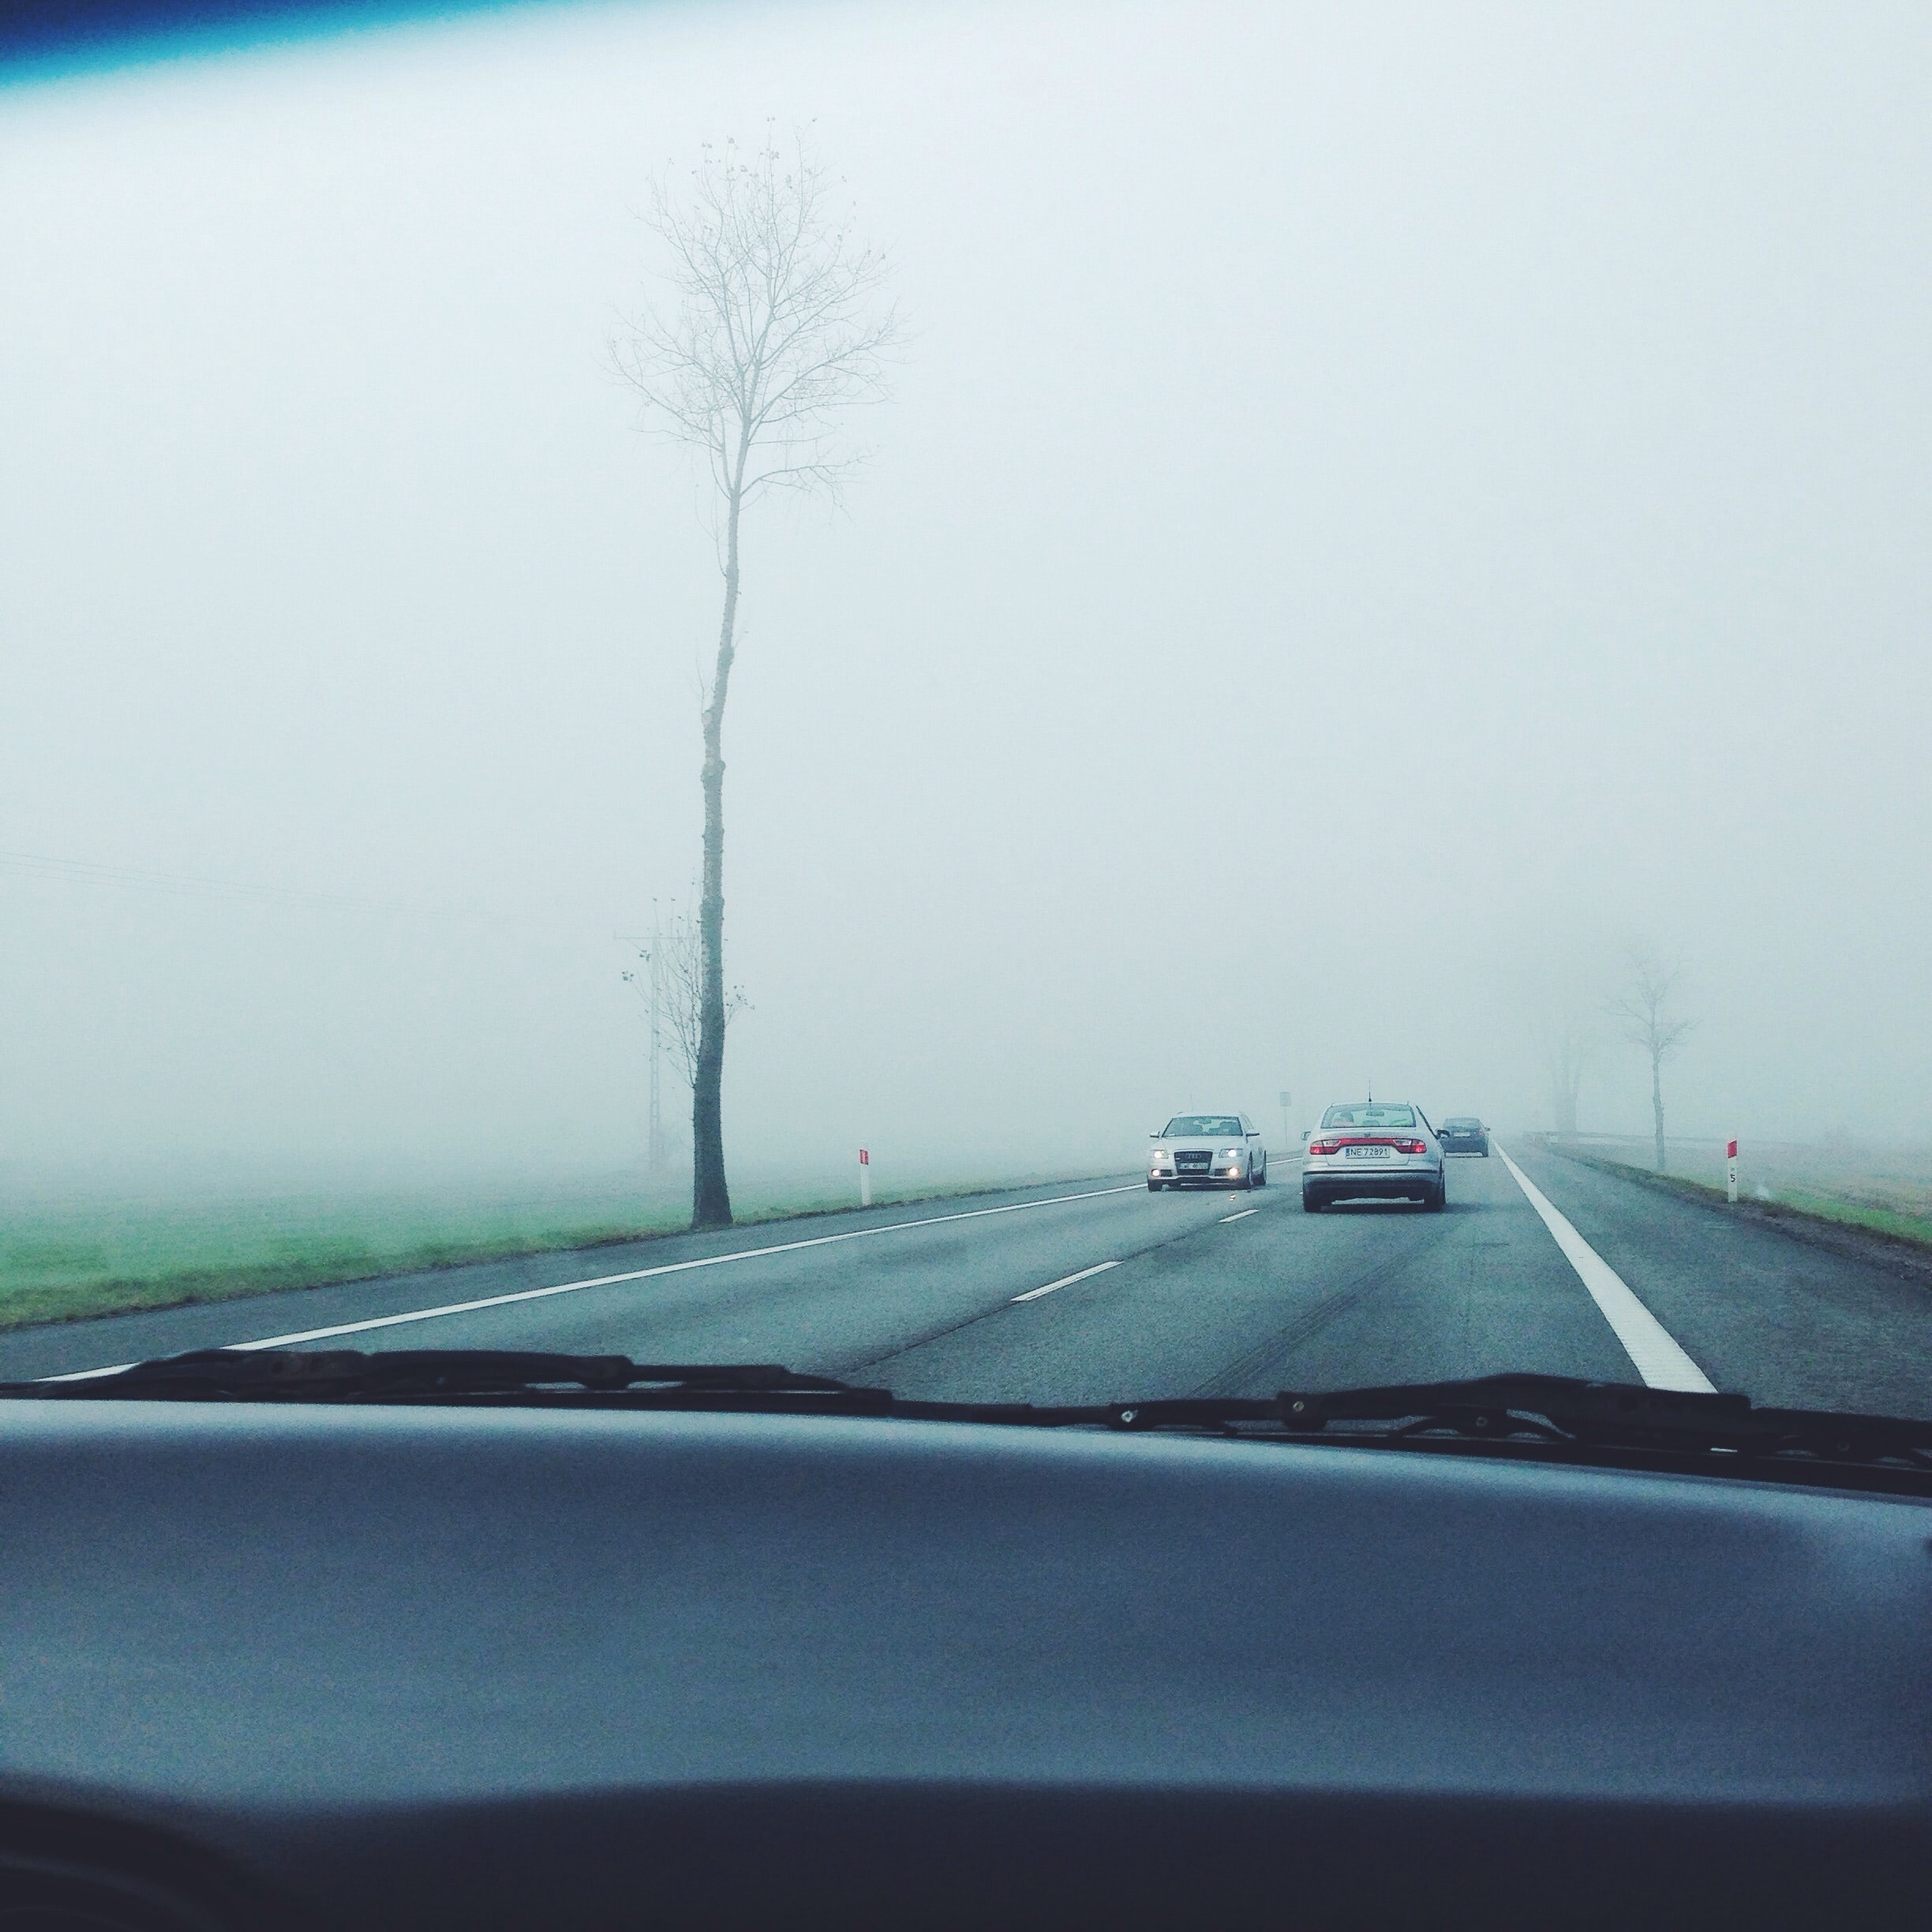 The view through a windshield on a foggy road